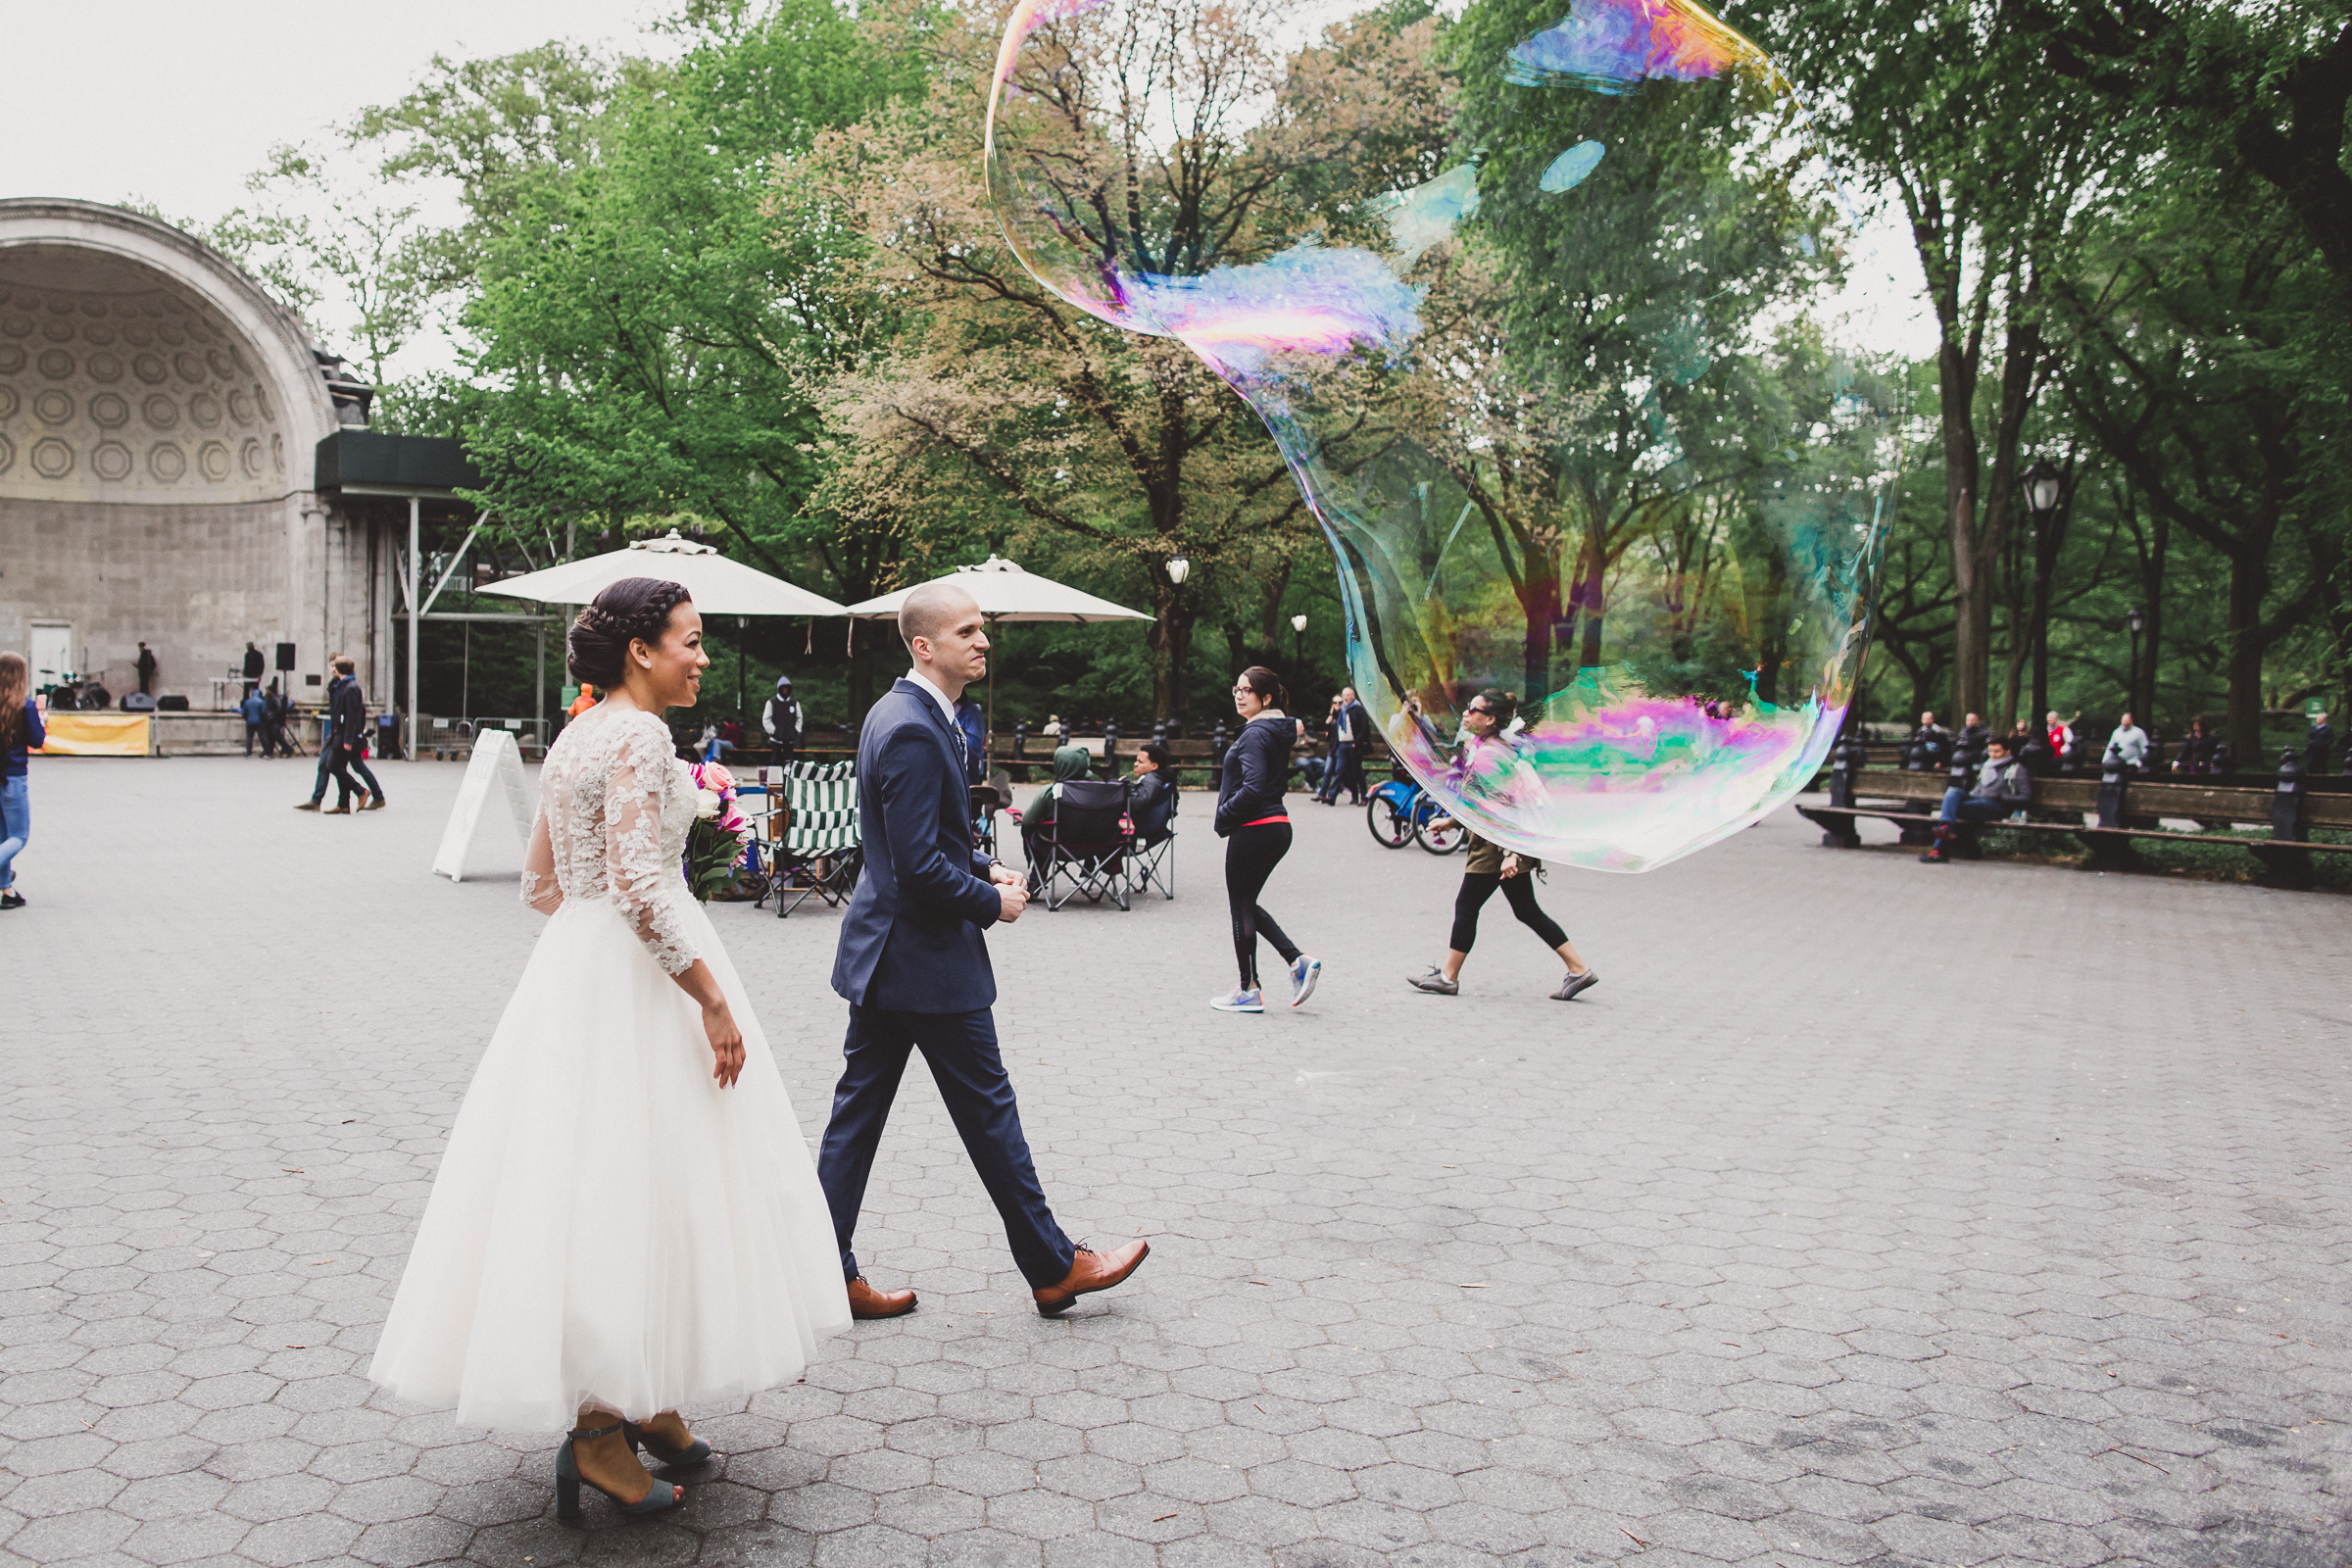 Wagner-Cove-Central-Park-Elopement-New-York-Documentary-Wedding-Photographer-28.jpg